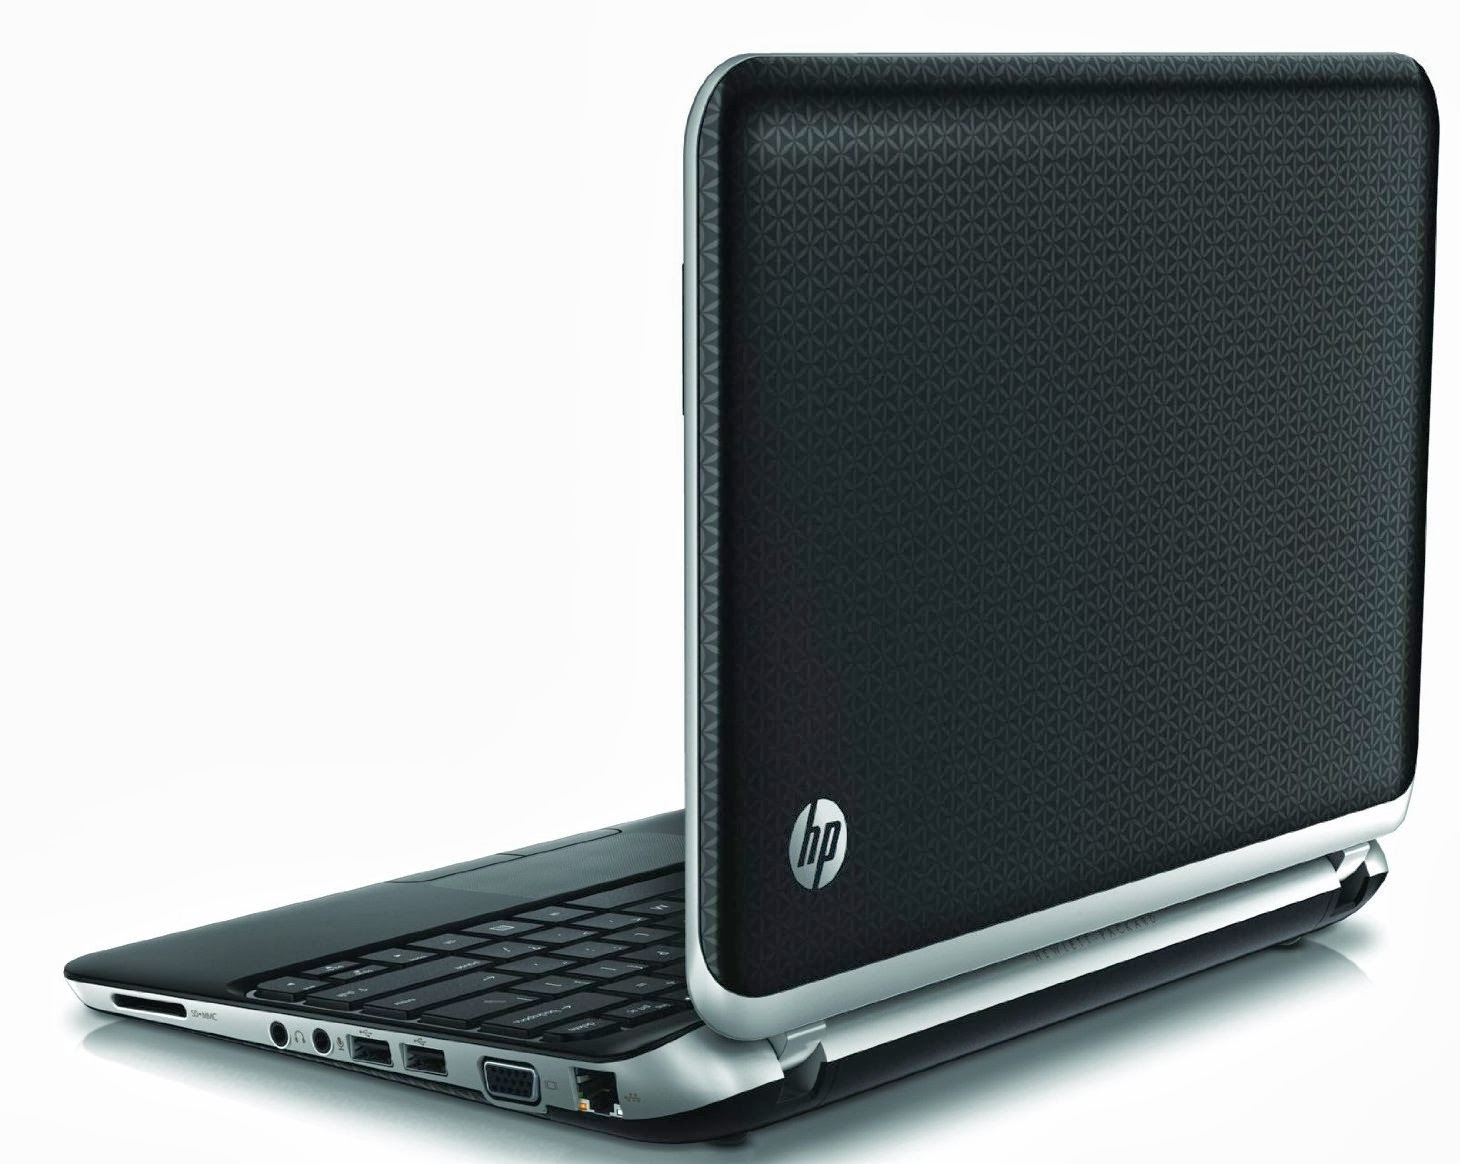 Laptop Drivers: HP Pavilion dm1-4400sa Drivers for Windows 8